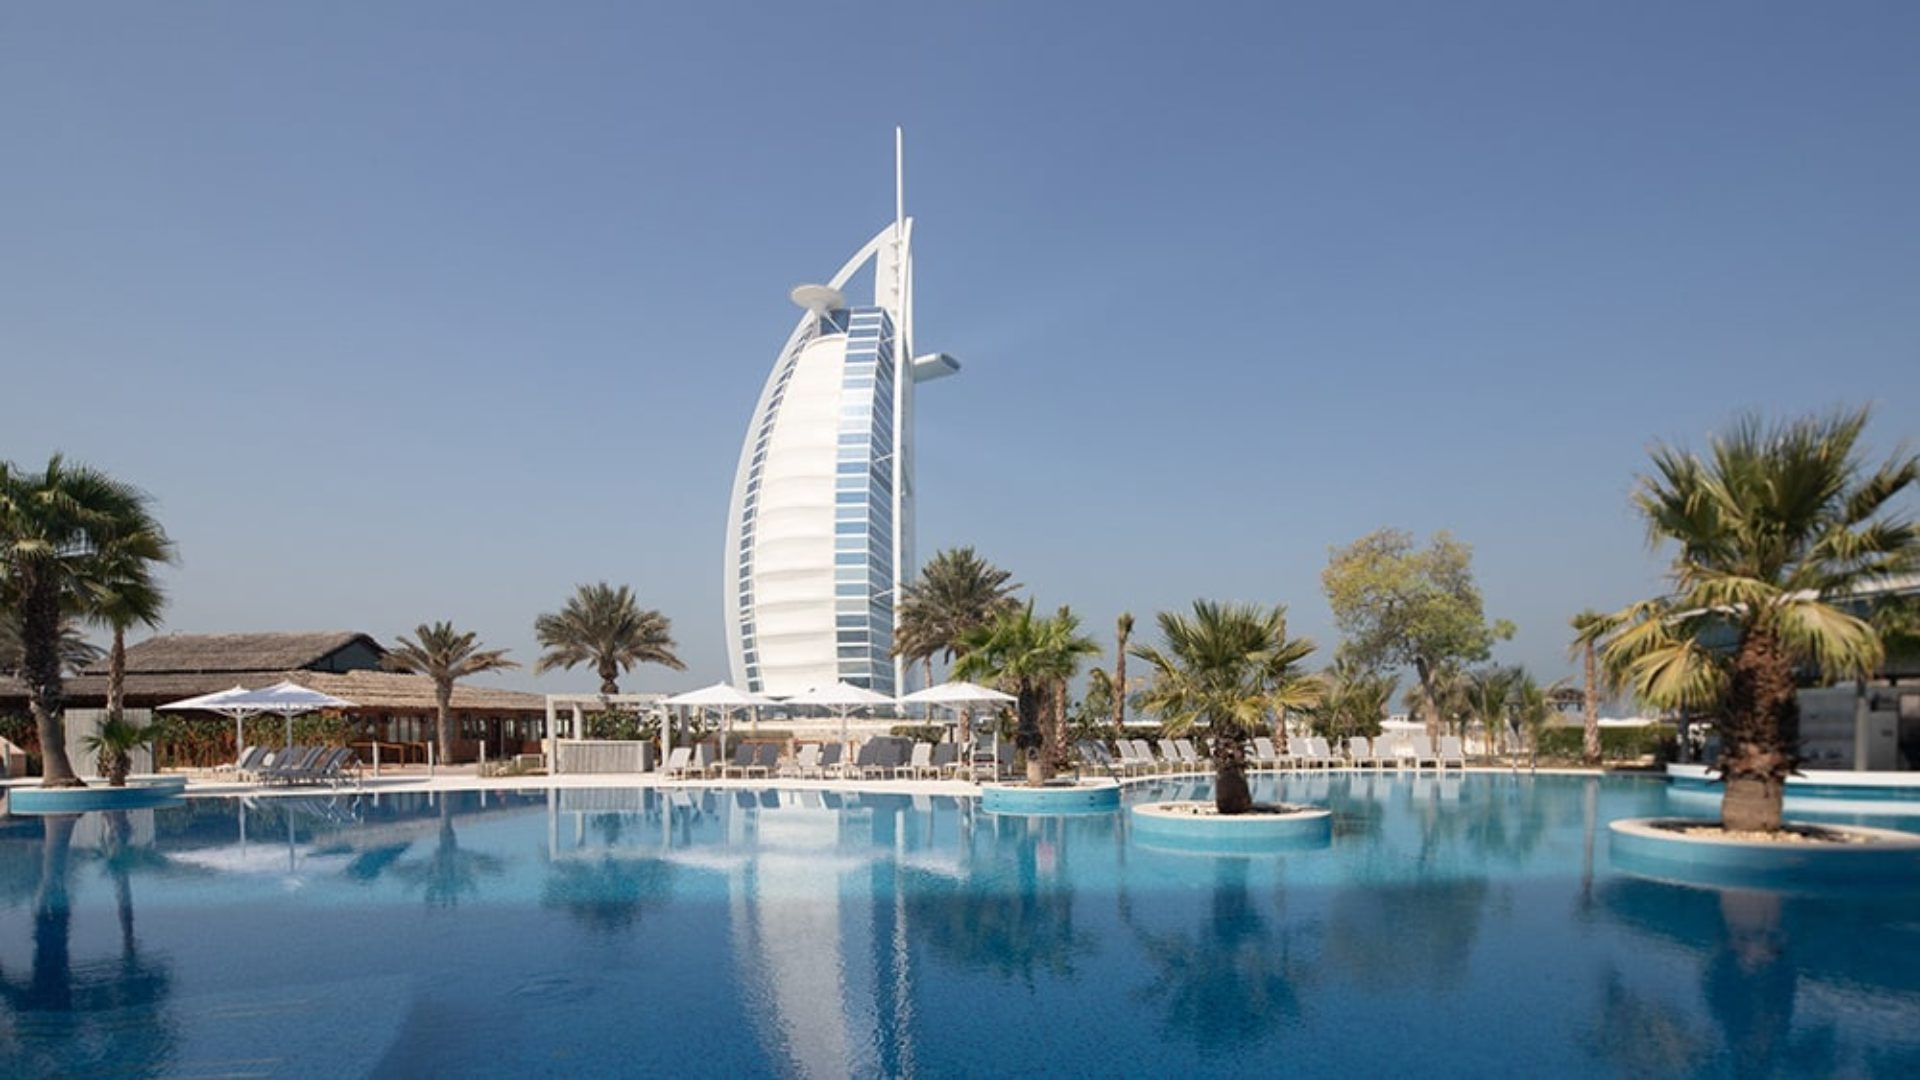 Leisure pool with view of Burj Al Arab at Jumeirah Beach Hotel